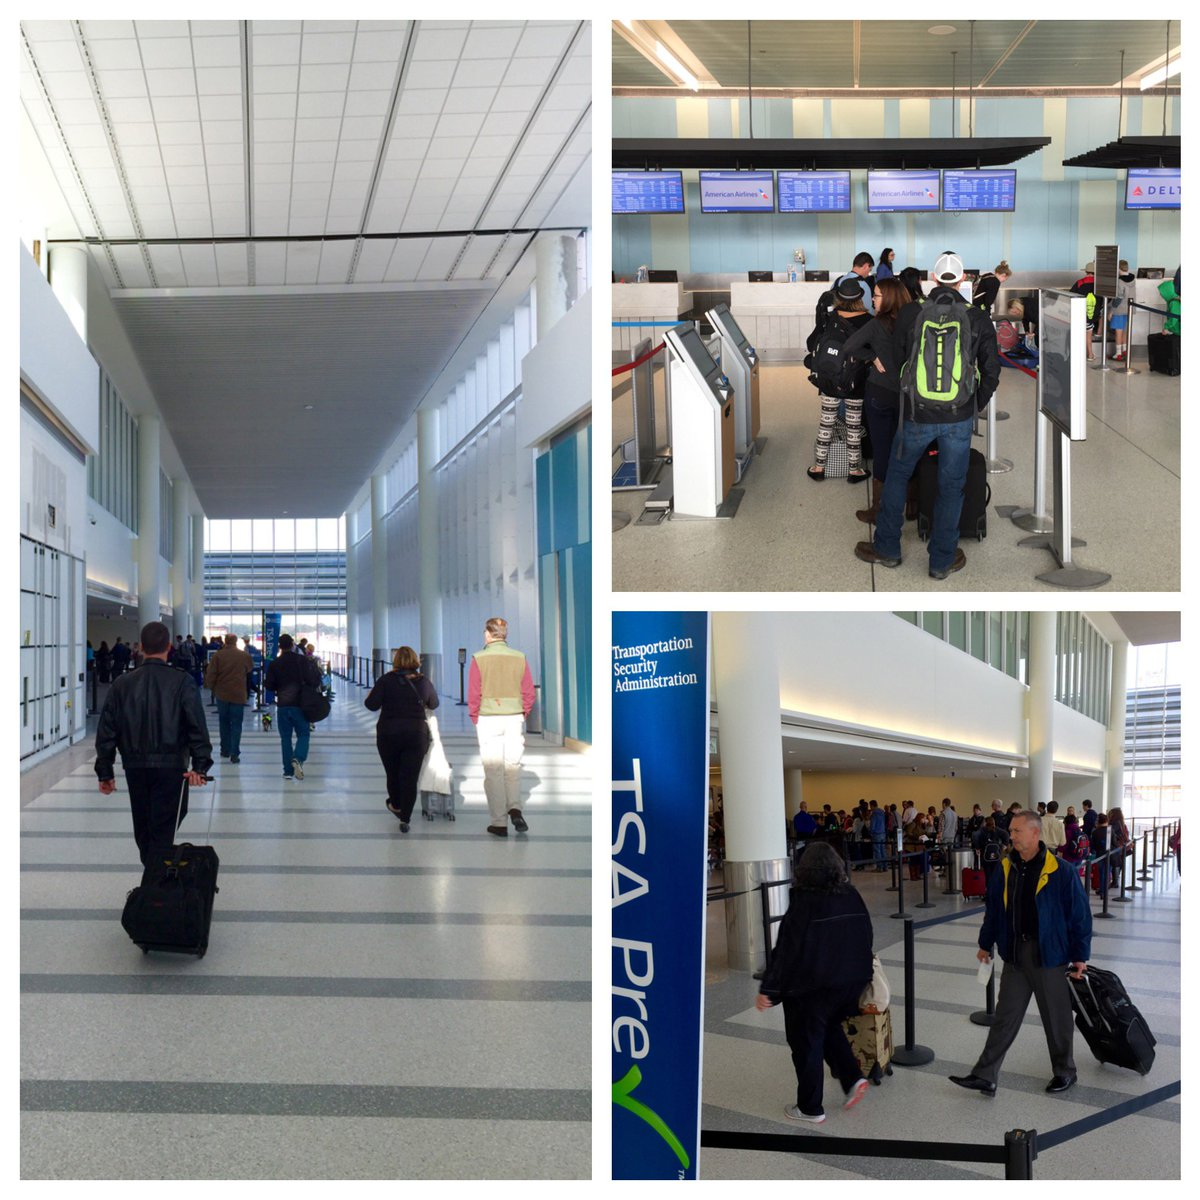 RT @CHS_Airport: It's busy but going smoothly so far. CHStraveltips: Arrive early for stress-free travel. https://�